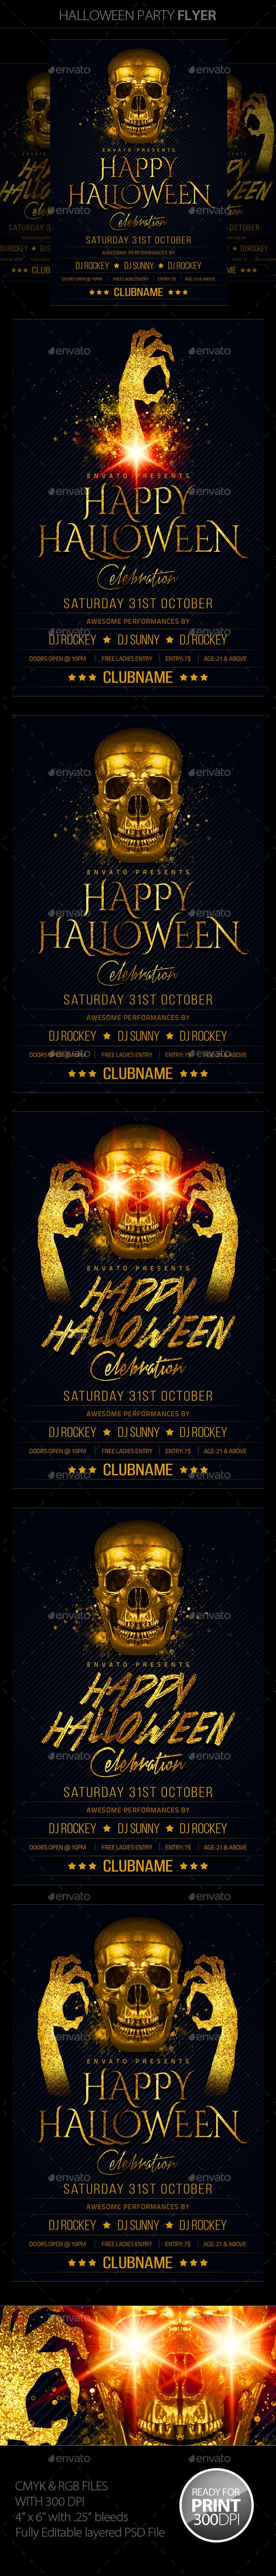 Halloween Party  Halloween Party Flyer Party Flyer And Halloween